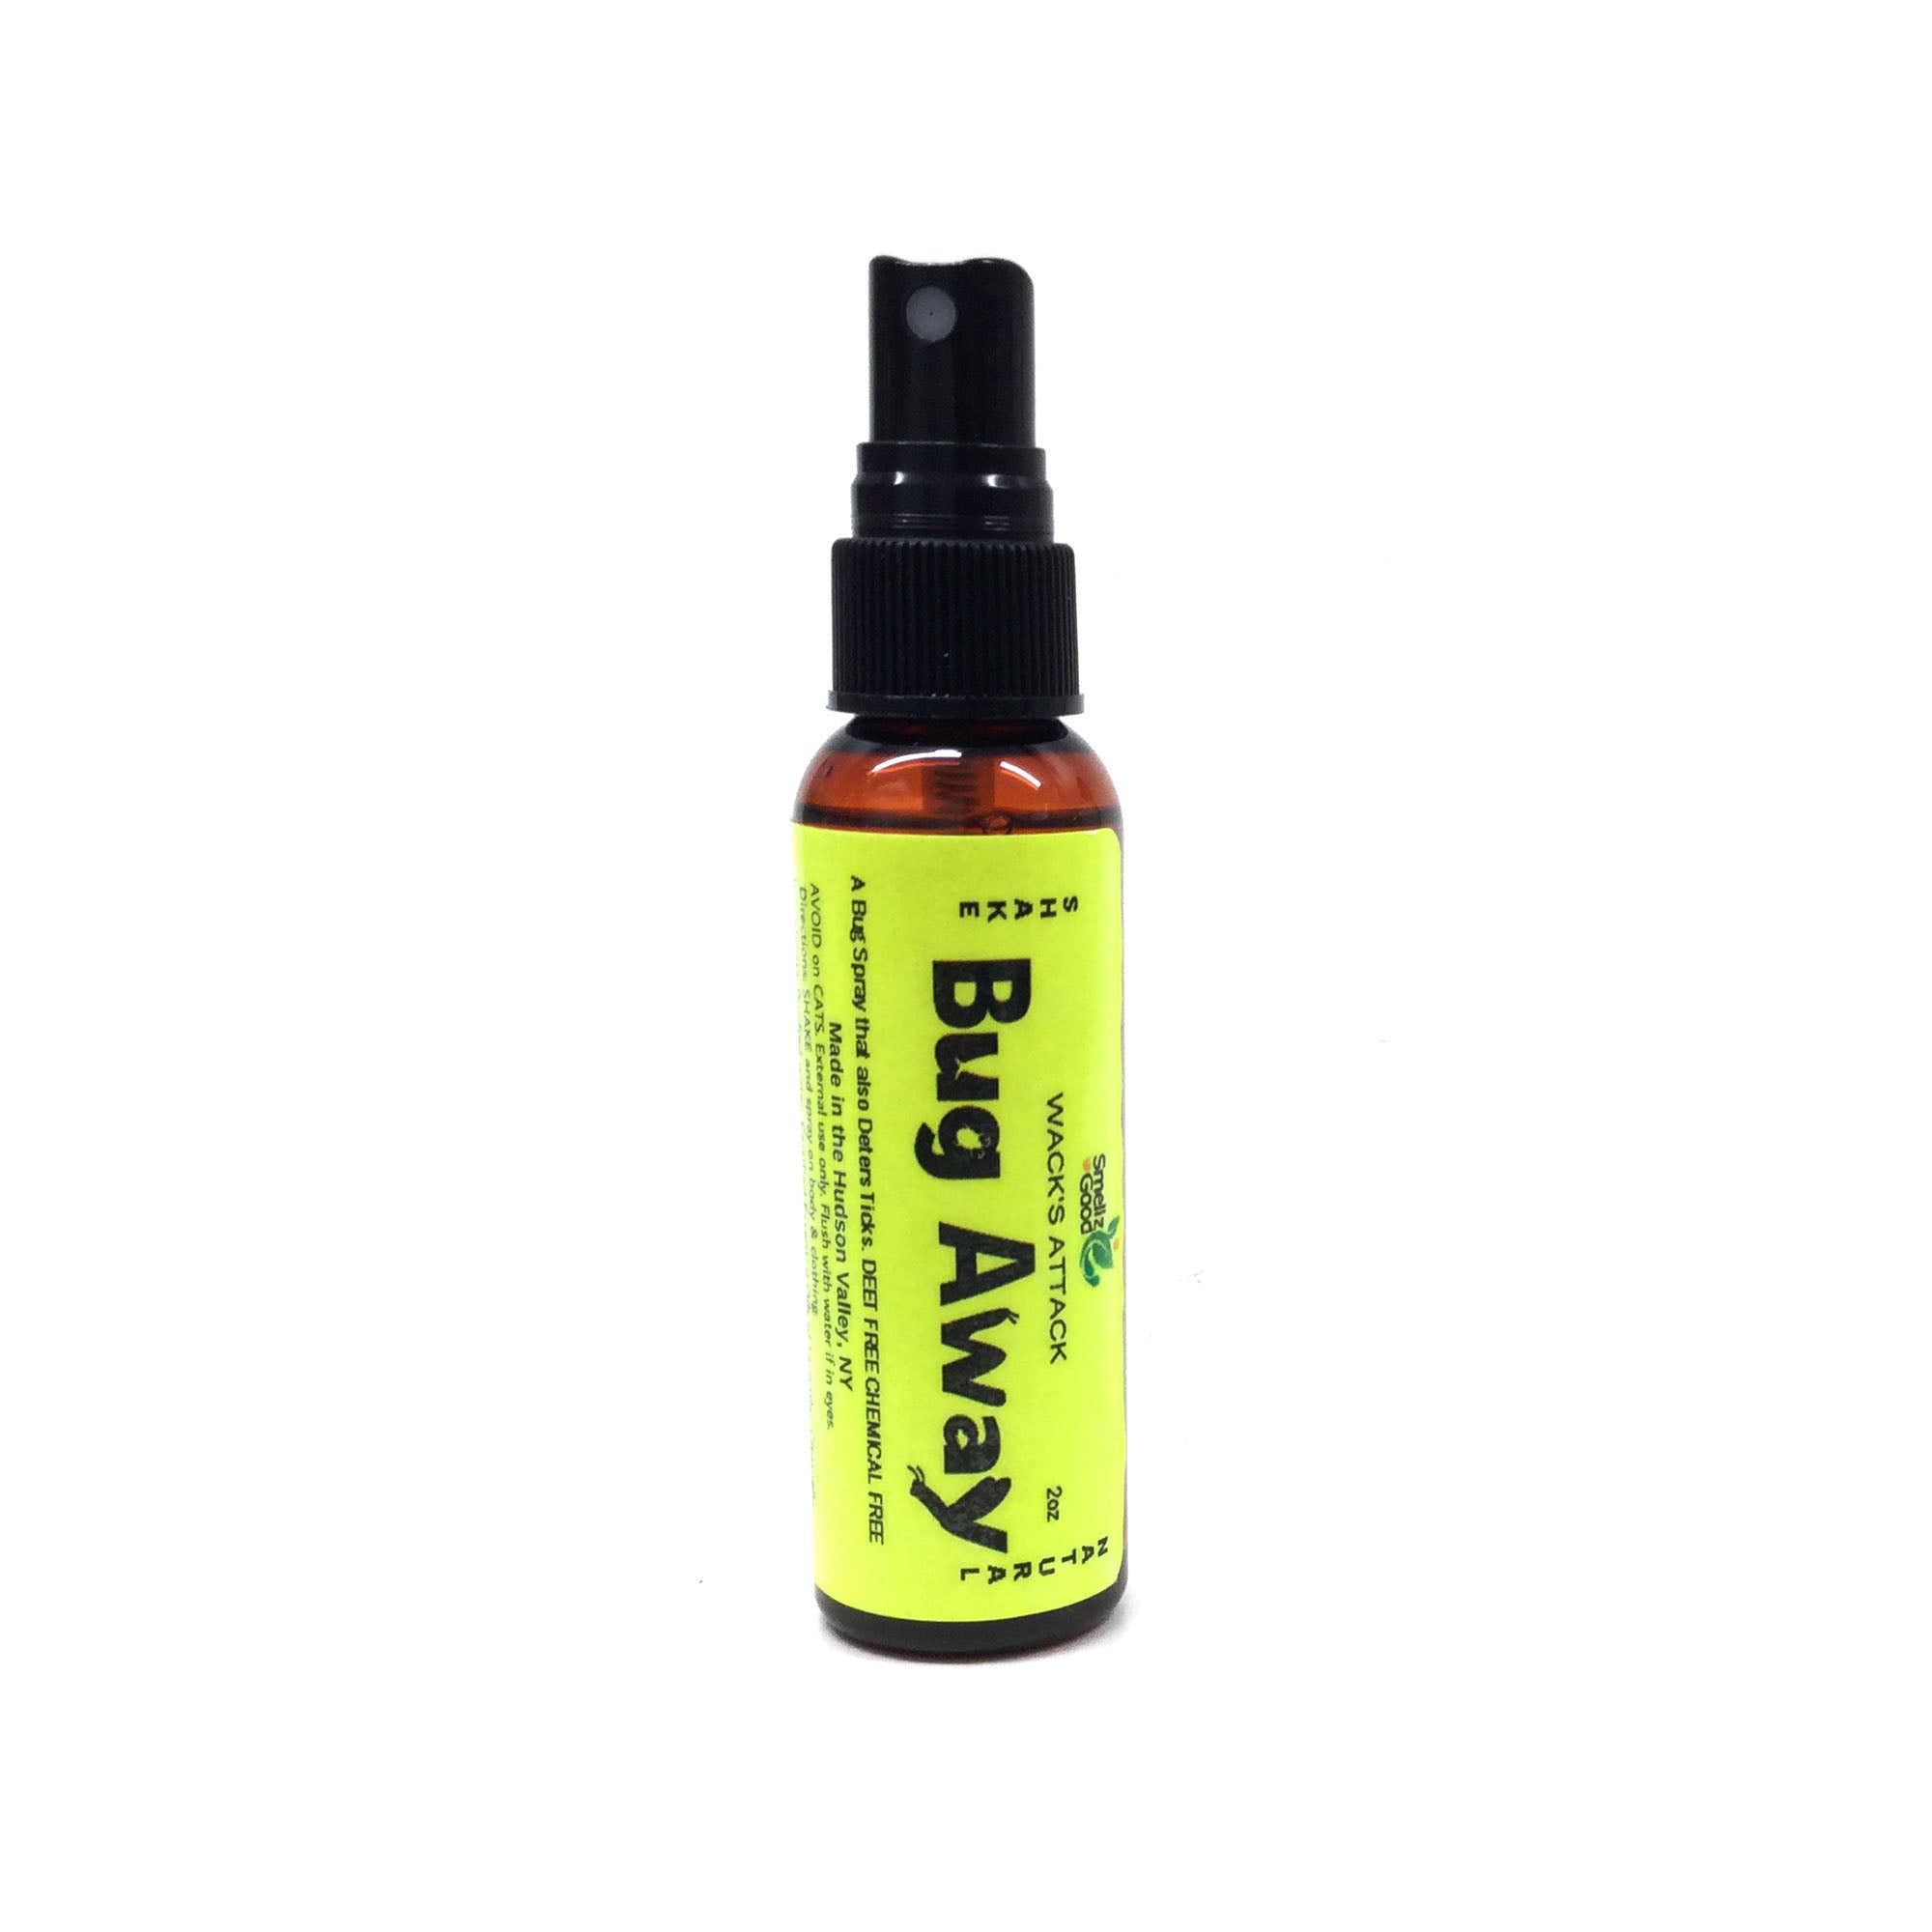 Wack's Attack Bug Away Bug Spray